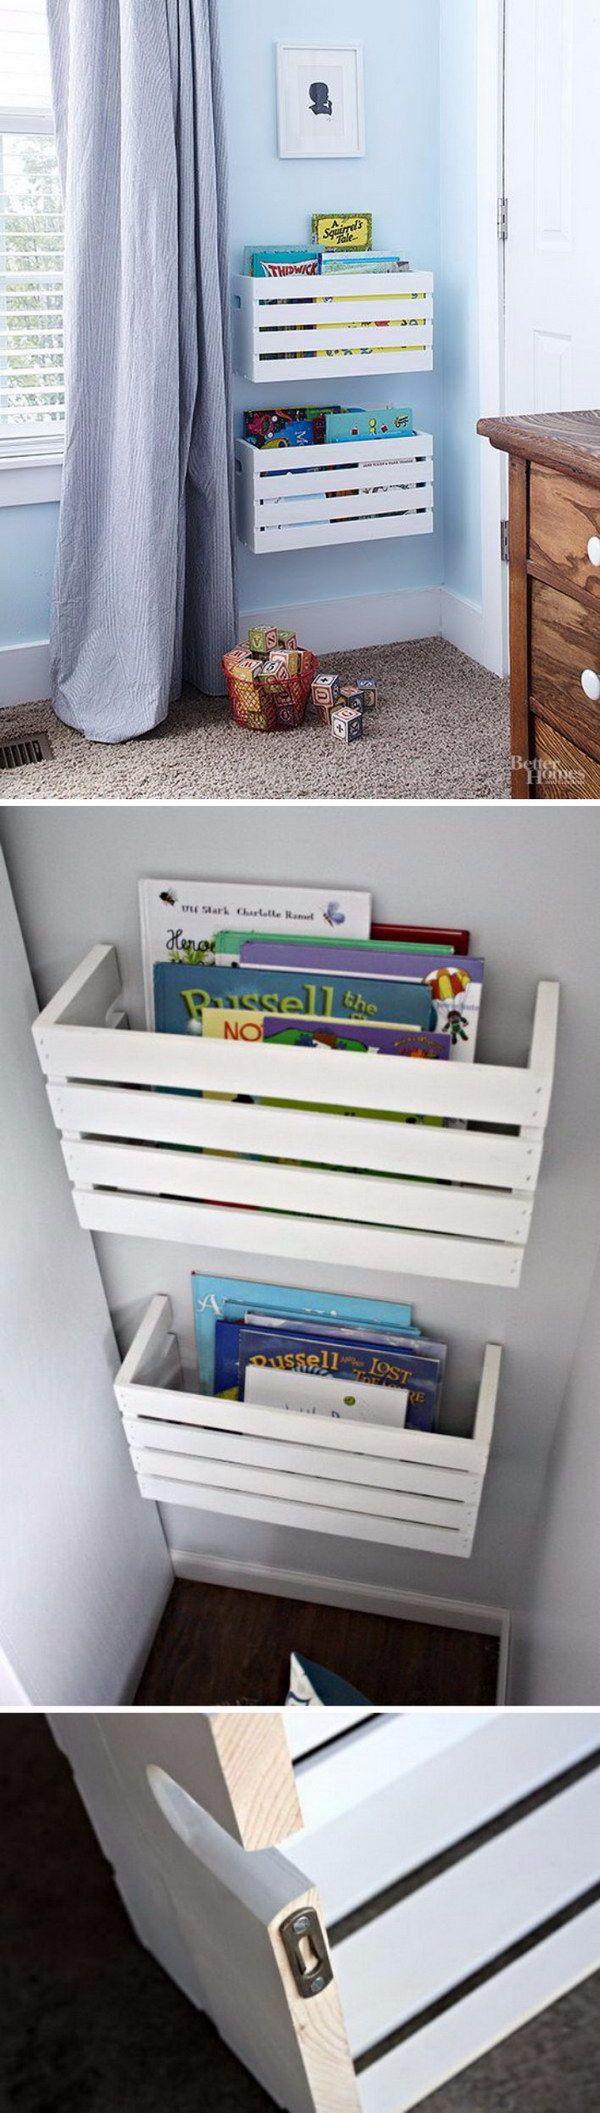 Exceptional Storing Books In Small Spaces Part - 12: Living Space Too Small? Try These Hacks To Squeeze In More Storage